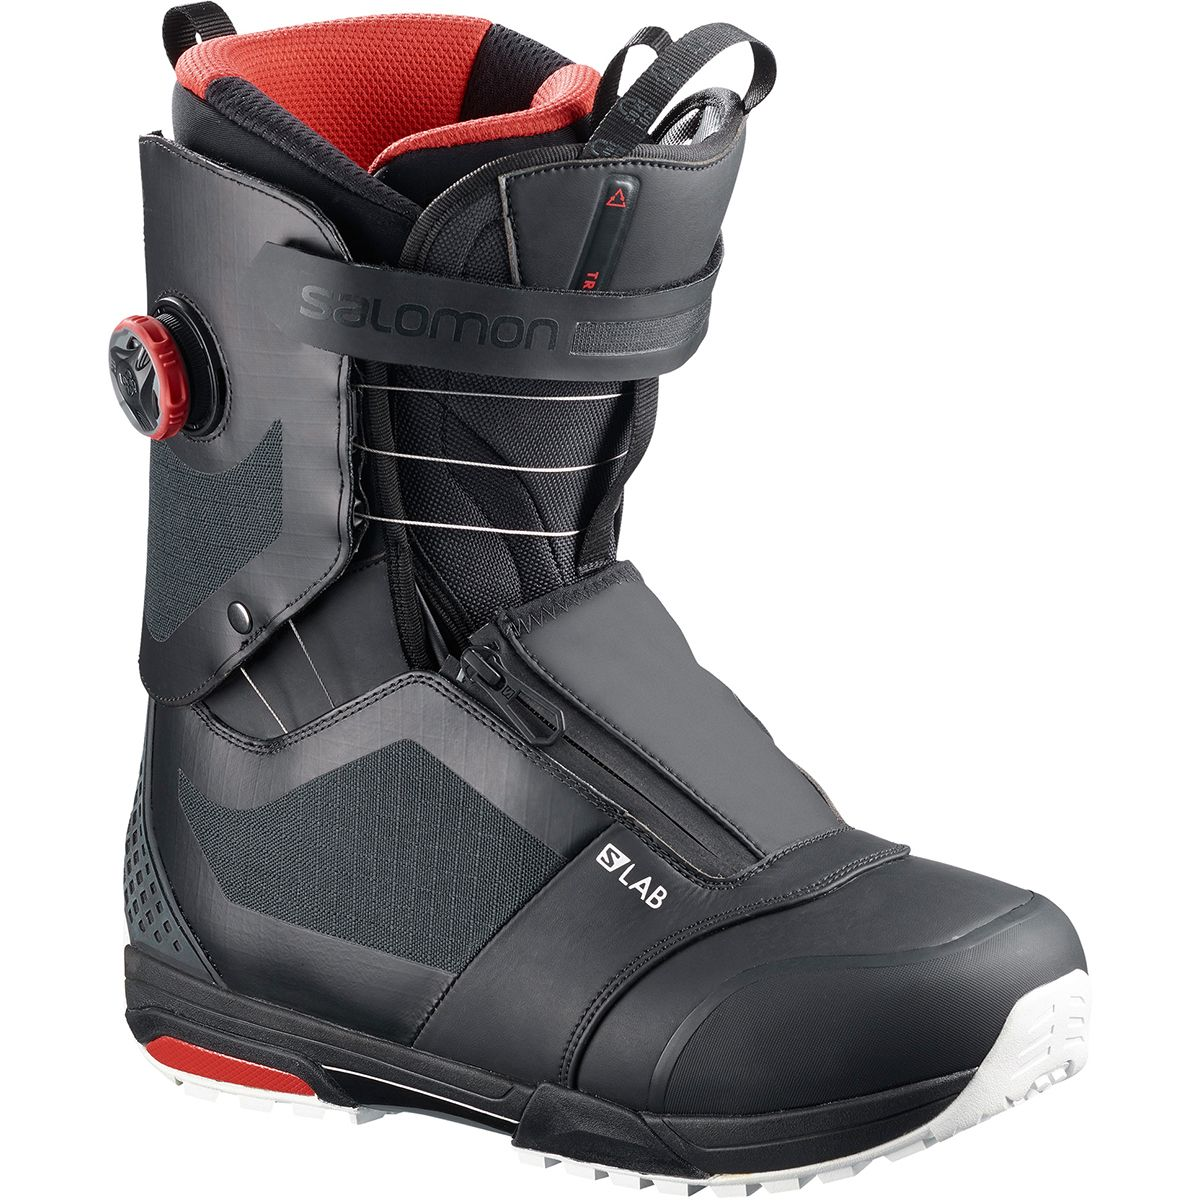 Salomon Snowboards Trek SLab Snowboard Boot